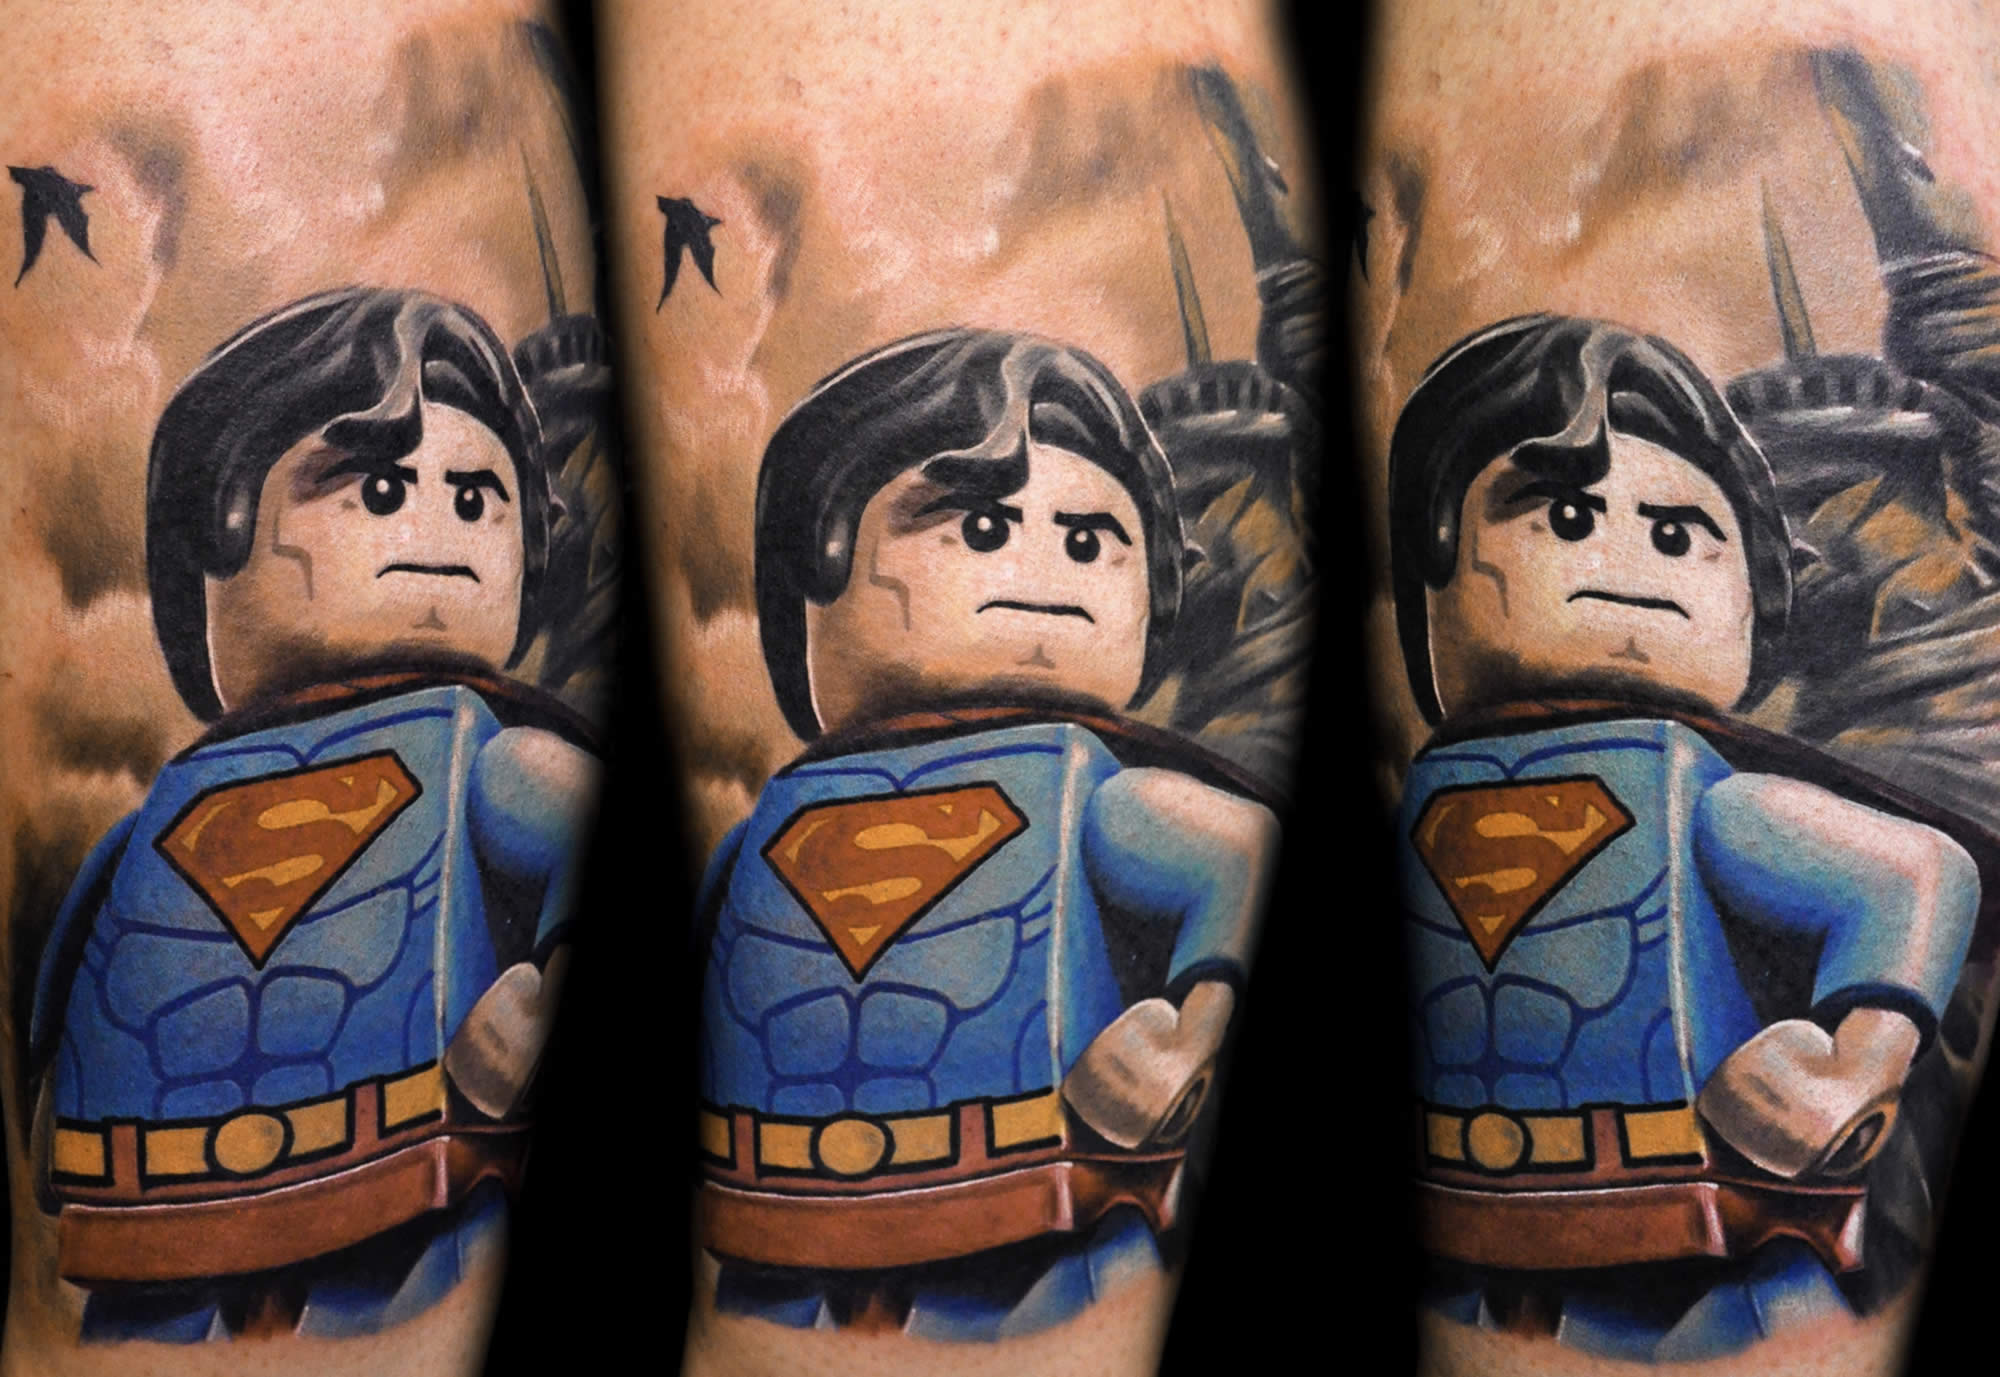 Lego Minifigure Tattoos and More by Max Pniewski